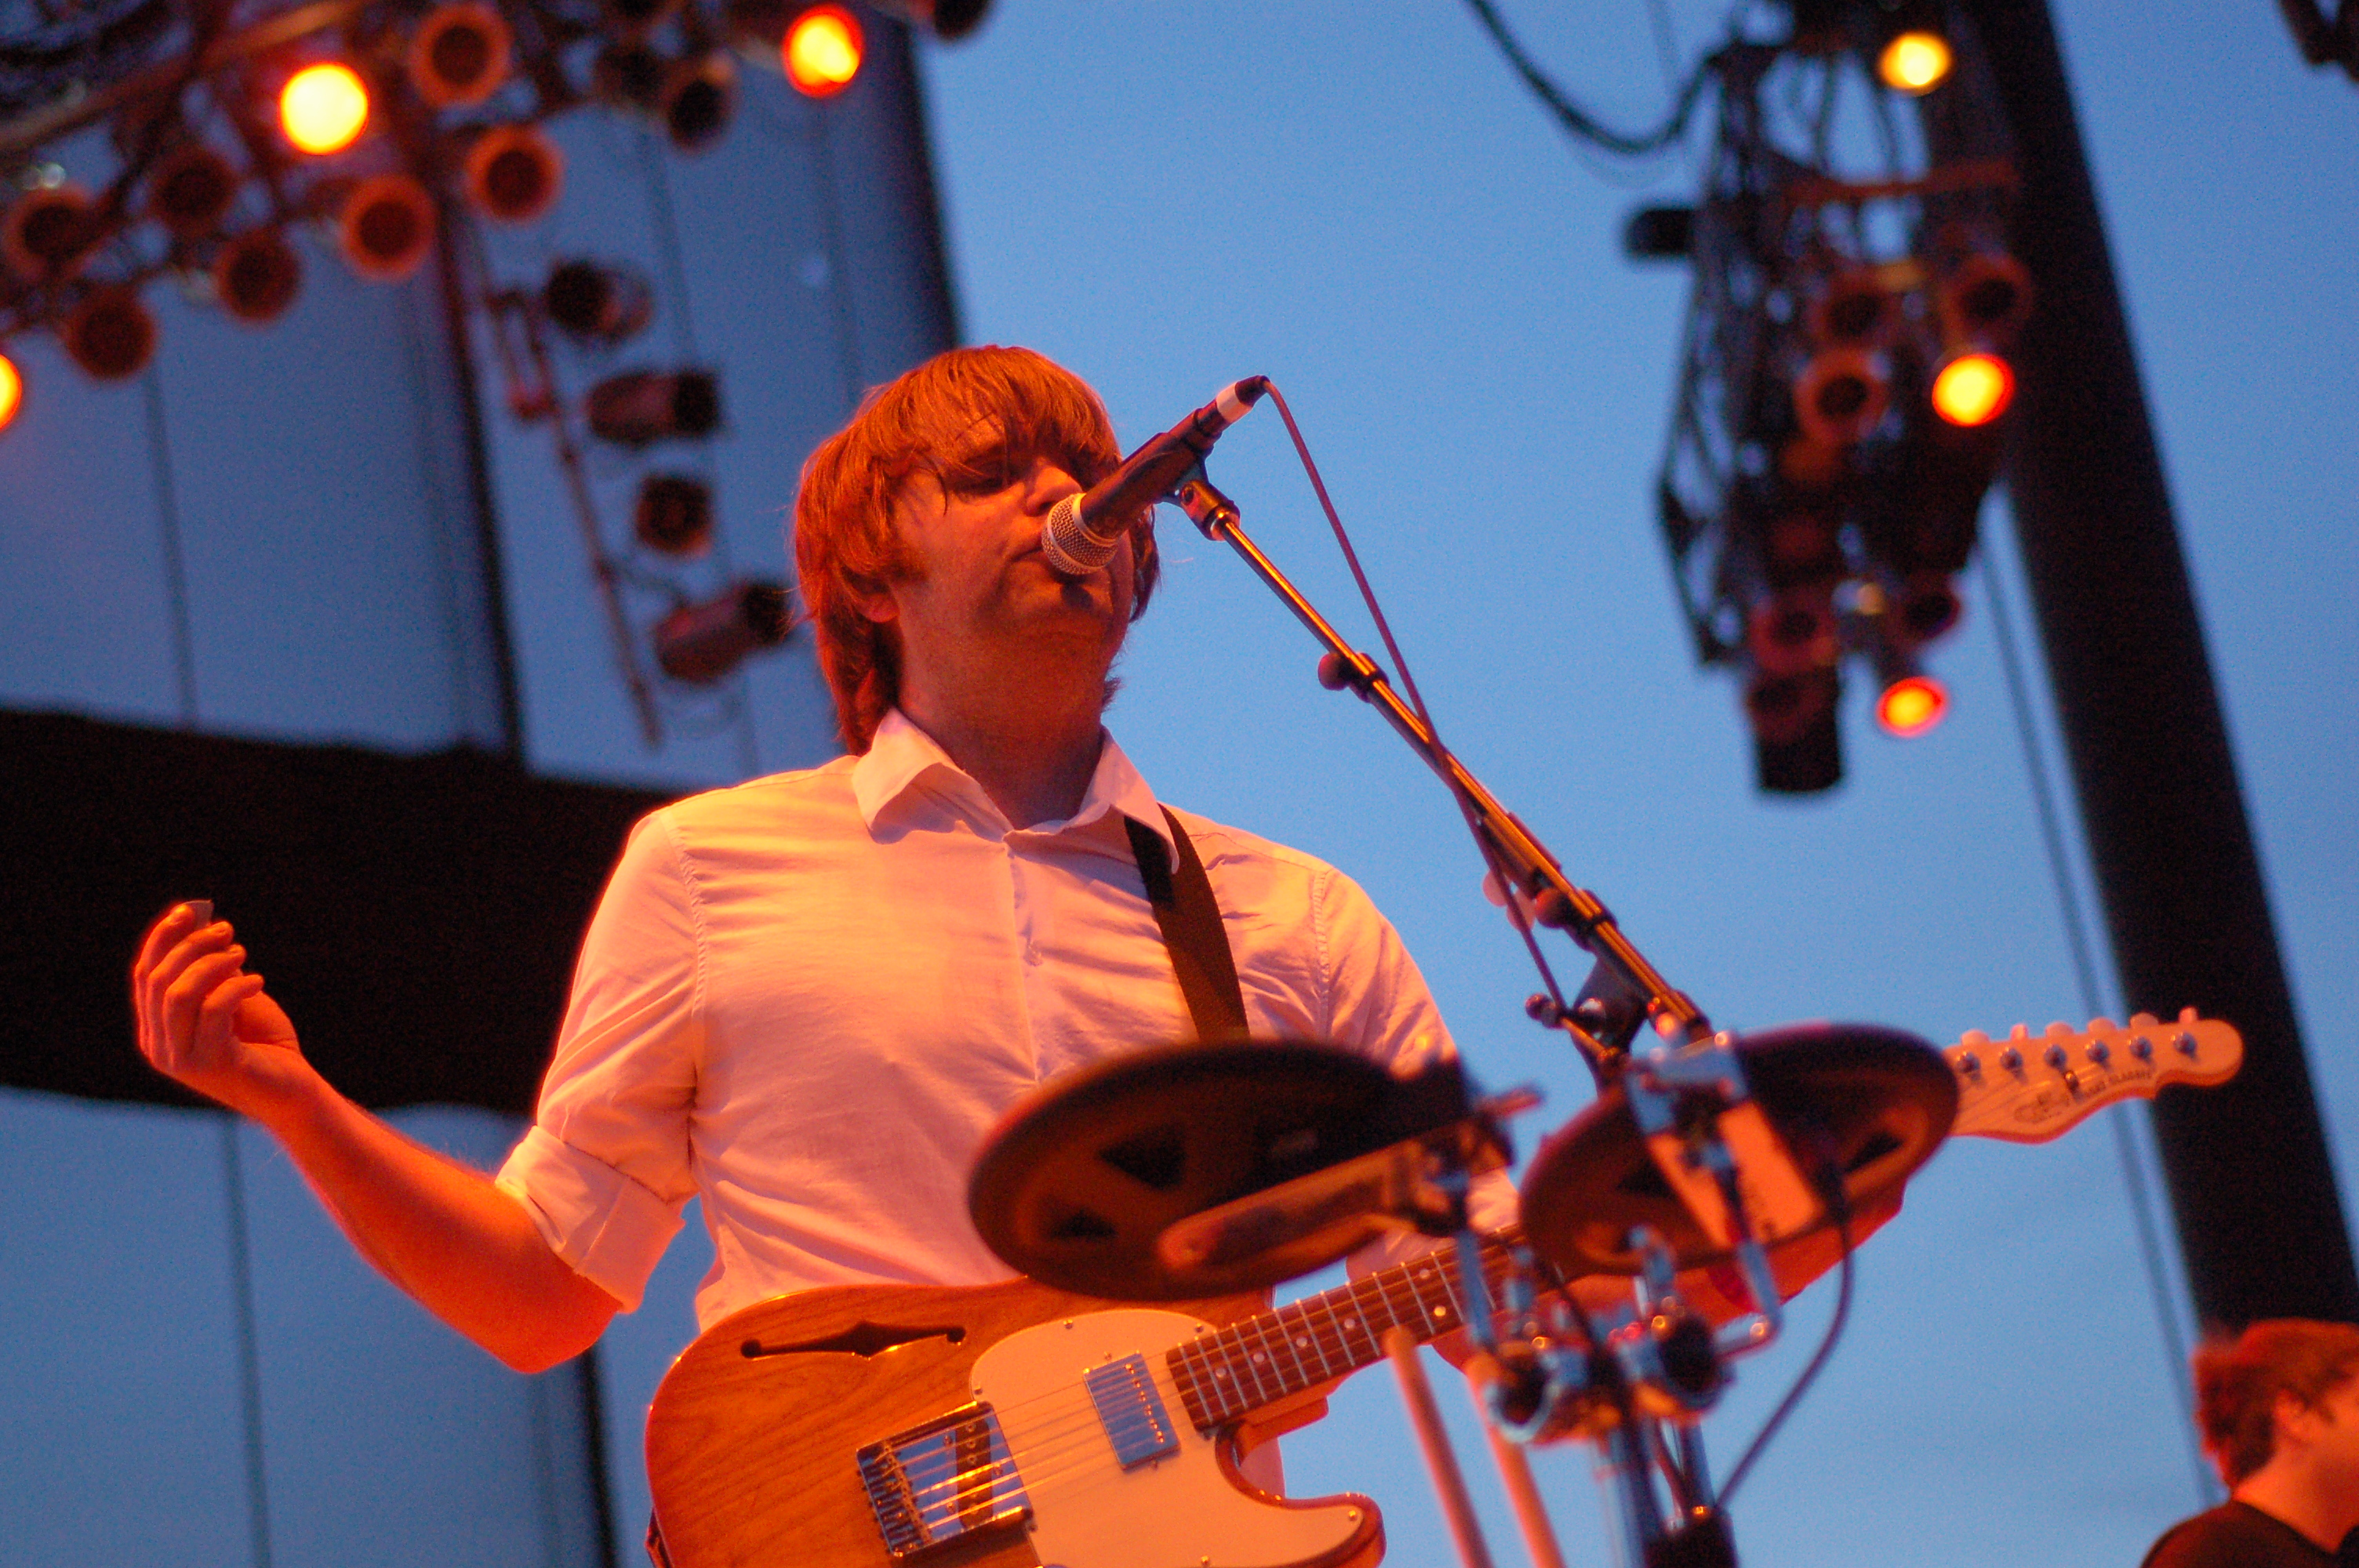 Ben Gibbard of Death Cab for Cutie- Sasquatch Music Festival, The Gorge, WAspacehindu